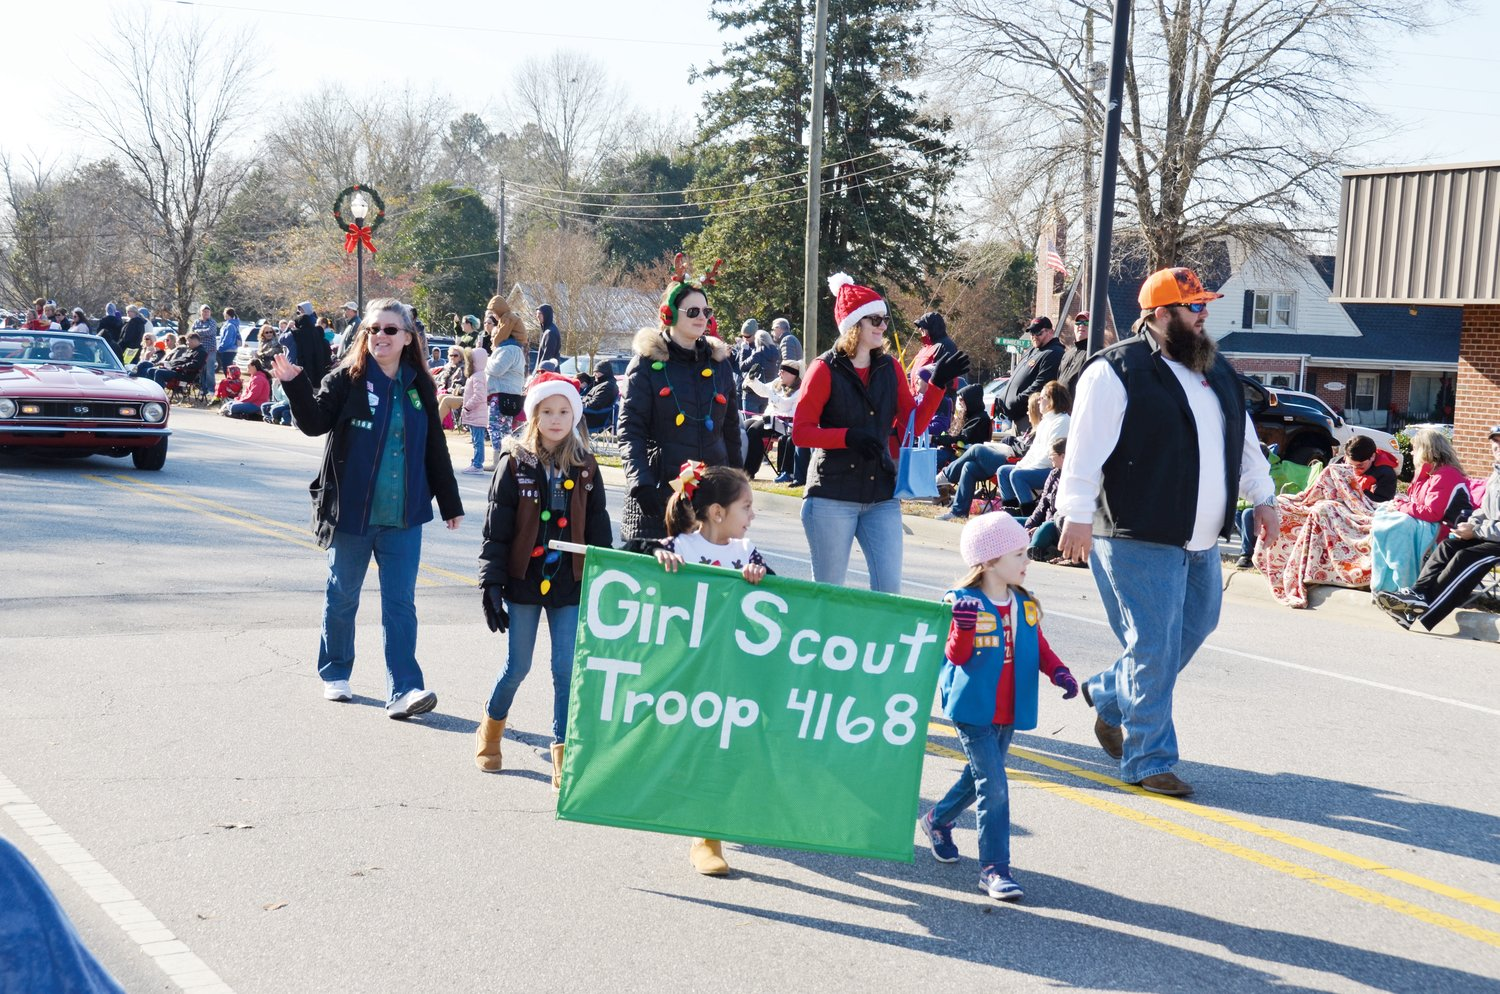 Girl Scout Troop 4168 members make their way up Broad Street during the annual Angier Christmas Parade that was held Saturday morning.